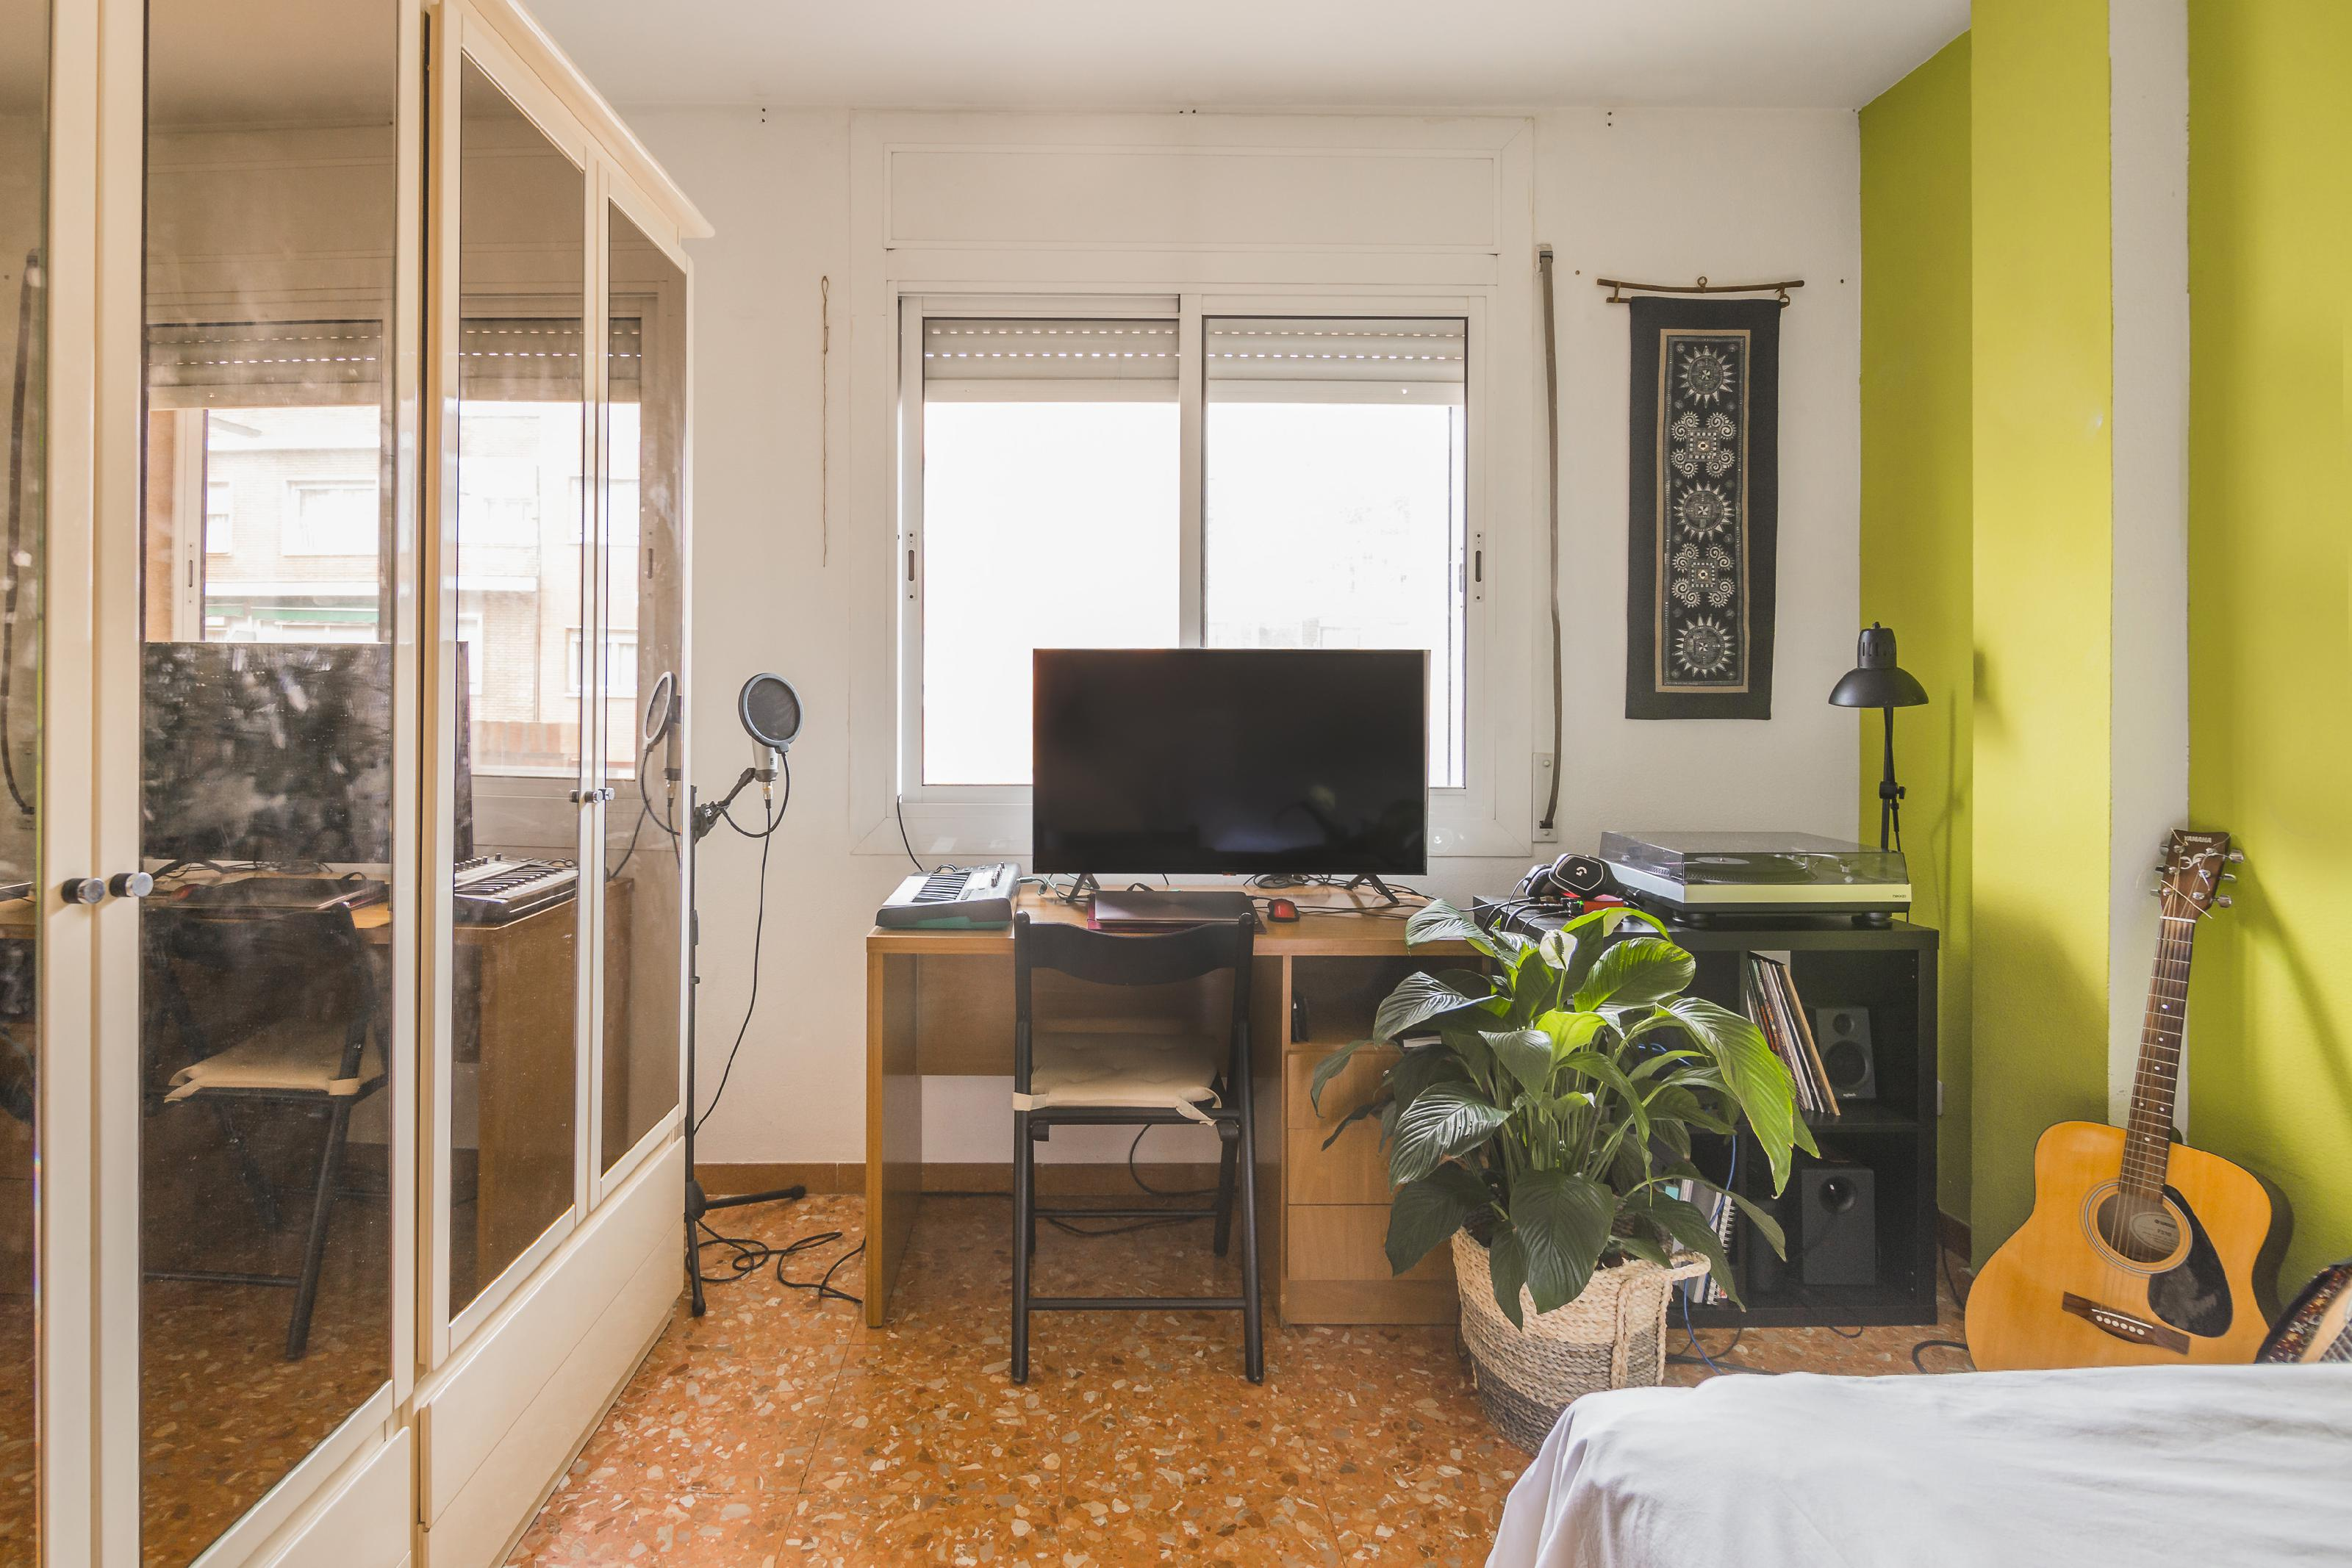 239426 Flat for sale in Les Corts, Les Corts 15